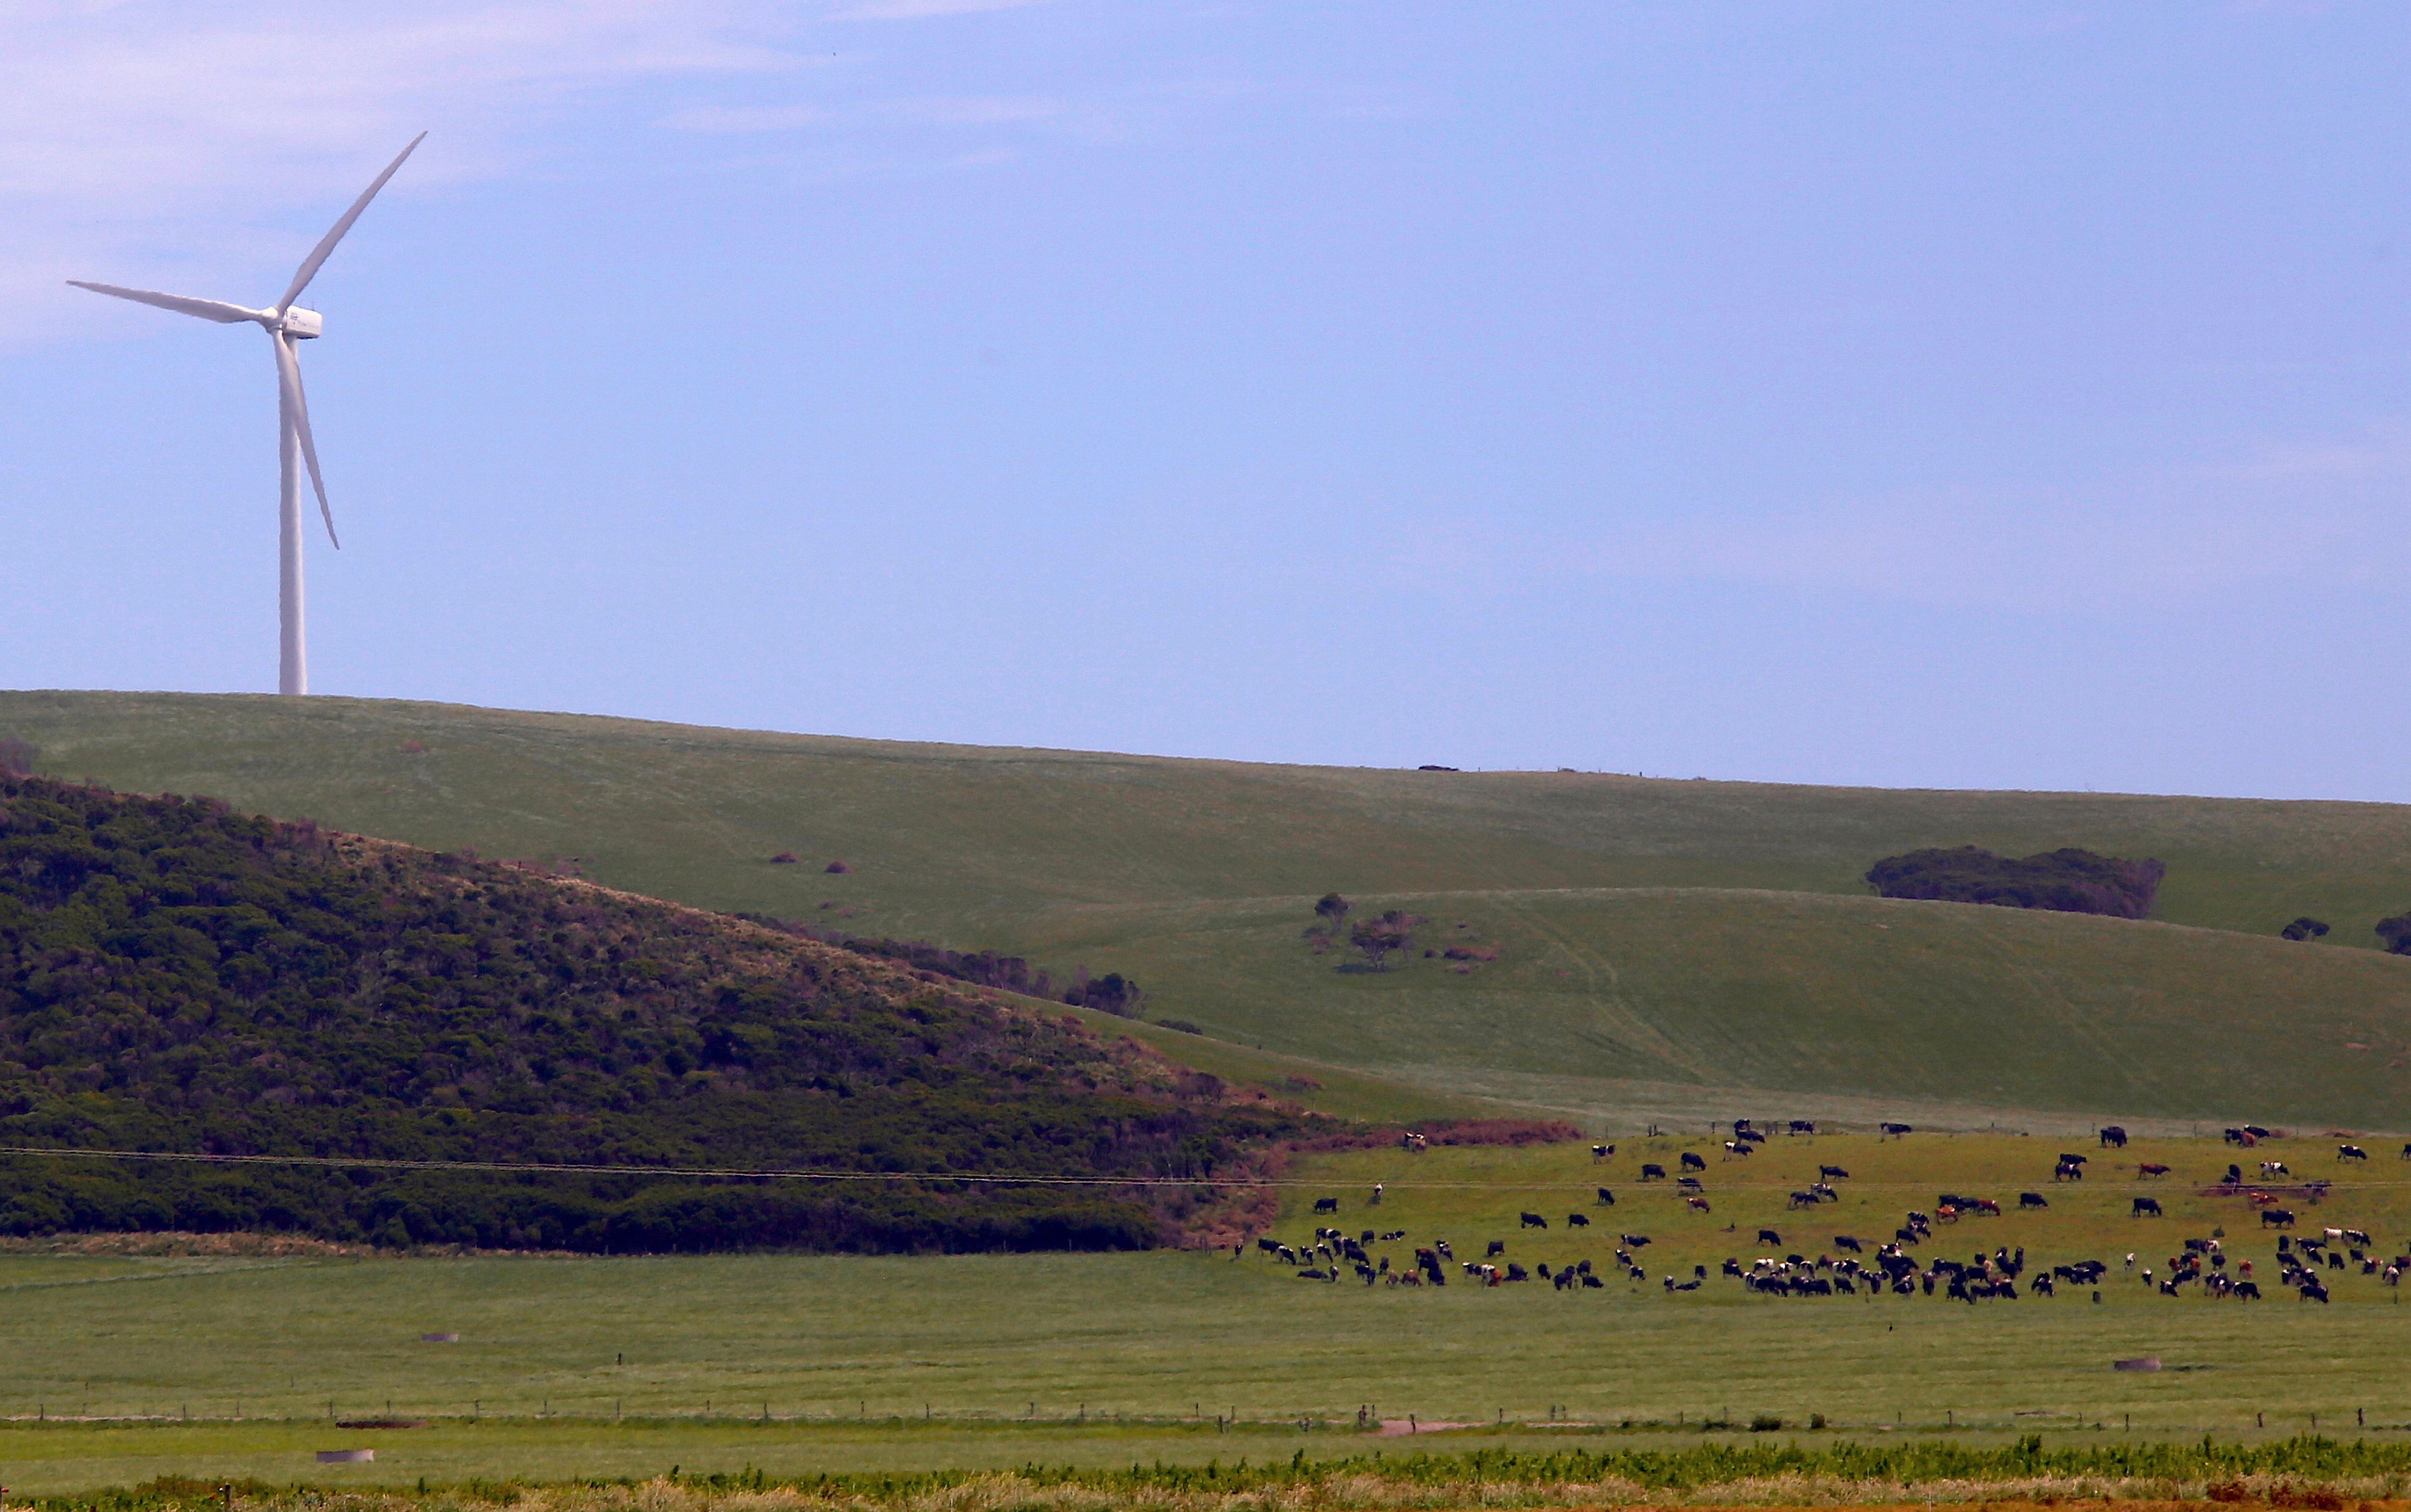 Cows gather in a paddock near a wind turbine on a property that is owned by Van Dieman's Land Co (VDL), Australia's largest dairy, located on the windswept northwest coast of the southern island state of Tasmania, near the town of Smithton, Australia, November 17, 2016. Picture taken November 17, 2016. REUTERS/David Gray - RC1FF21A80A0